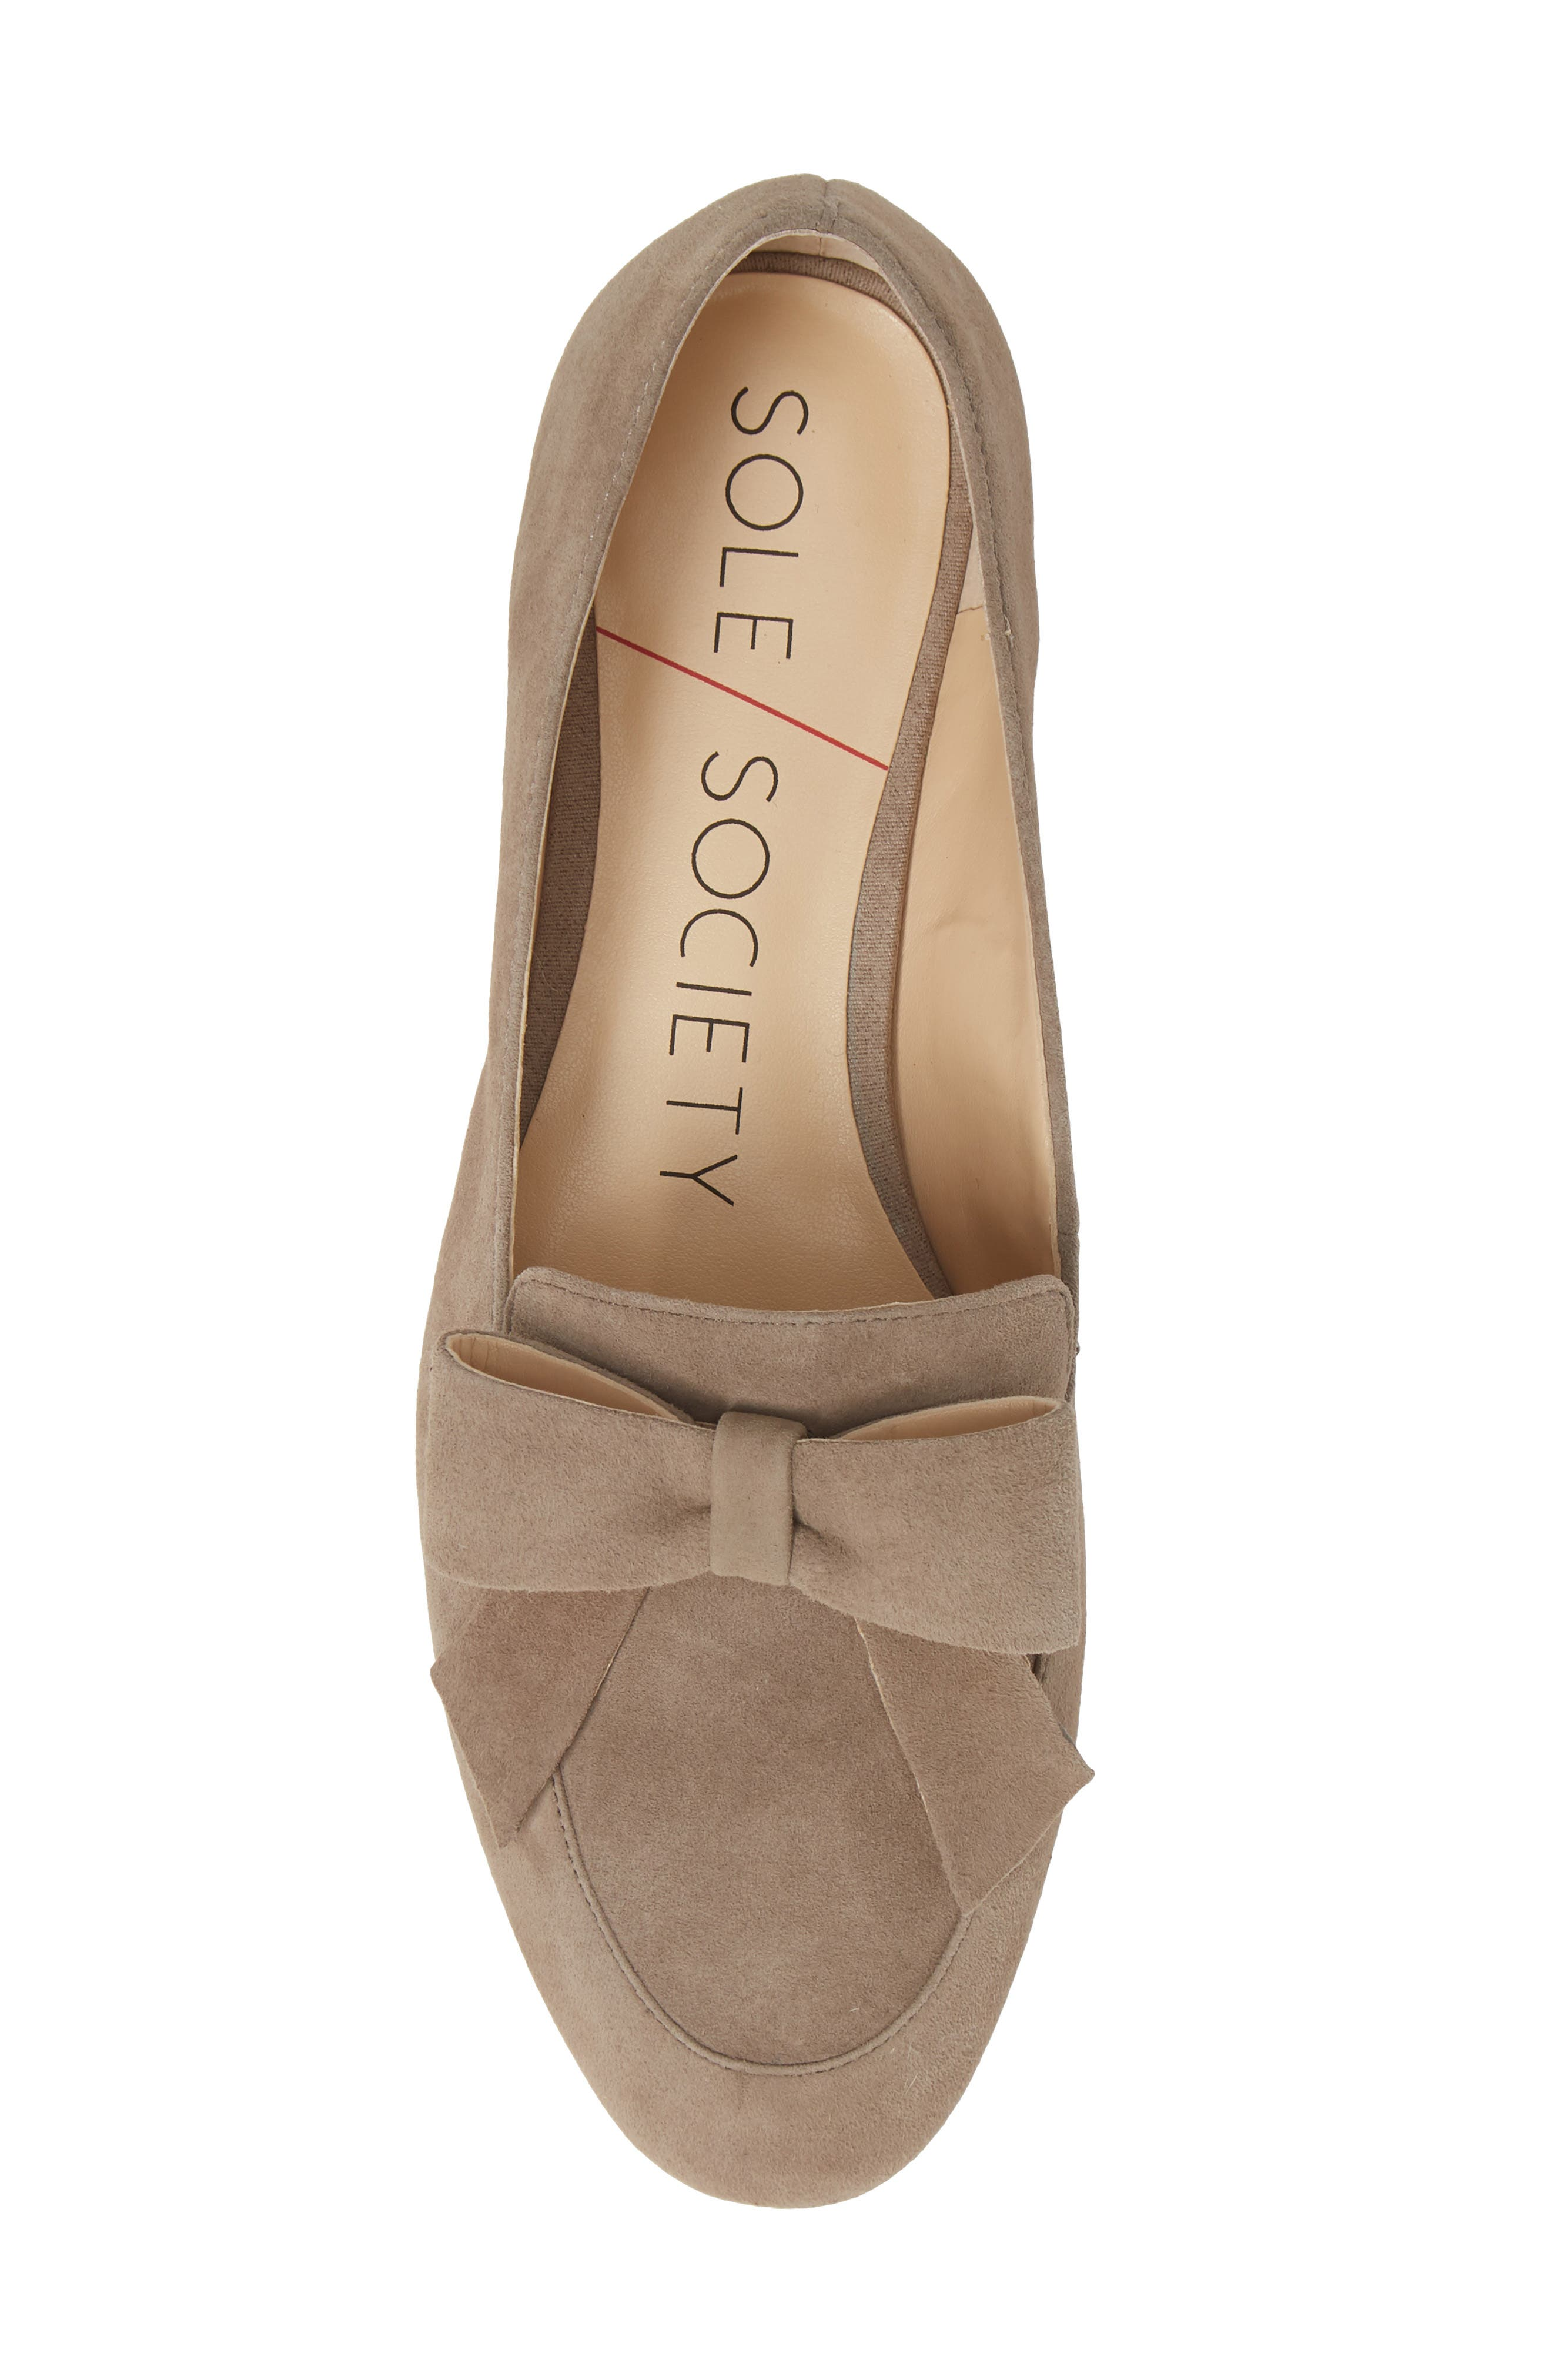 SOLE SOCIETY, Tannse Bow Loafer, Alternate thumbnail 5, color, MUSHROOM SUEDE